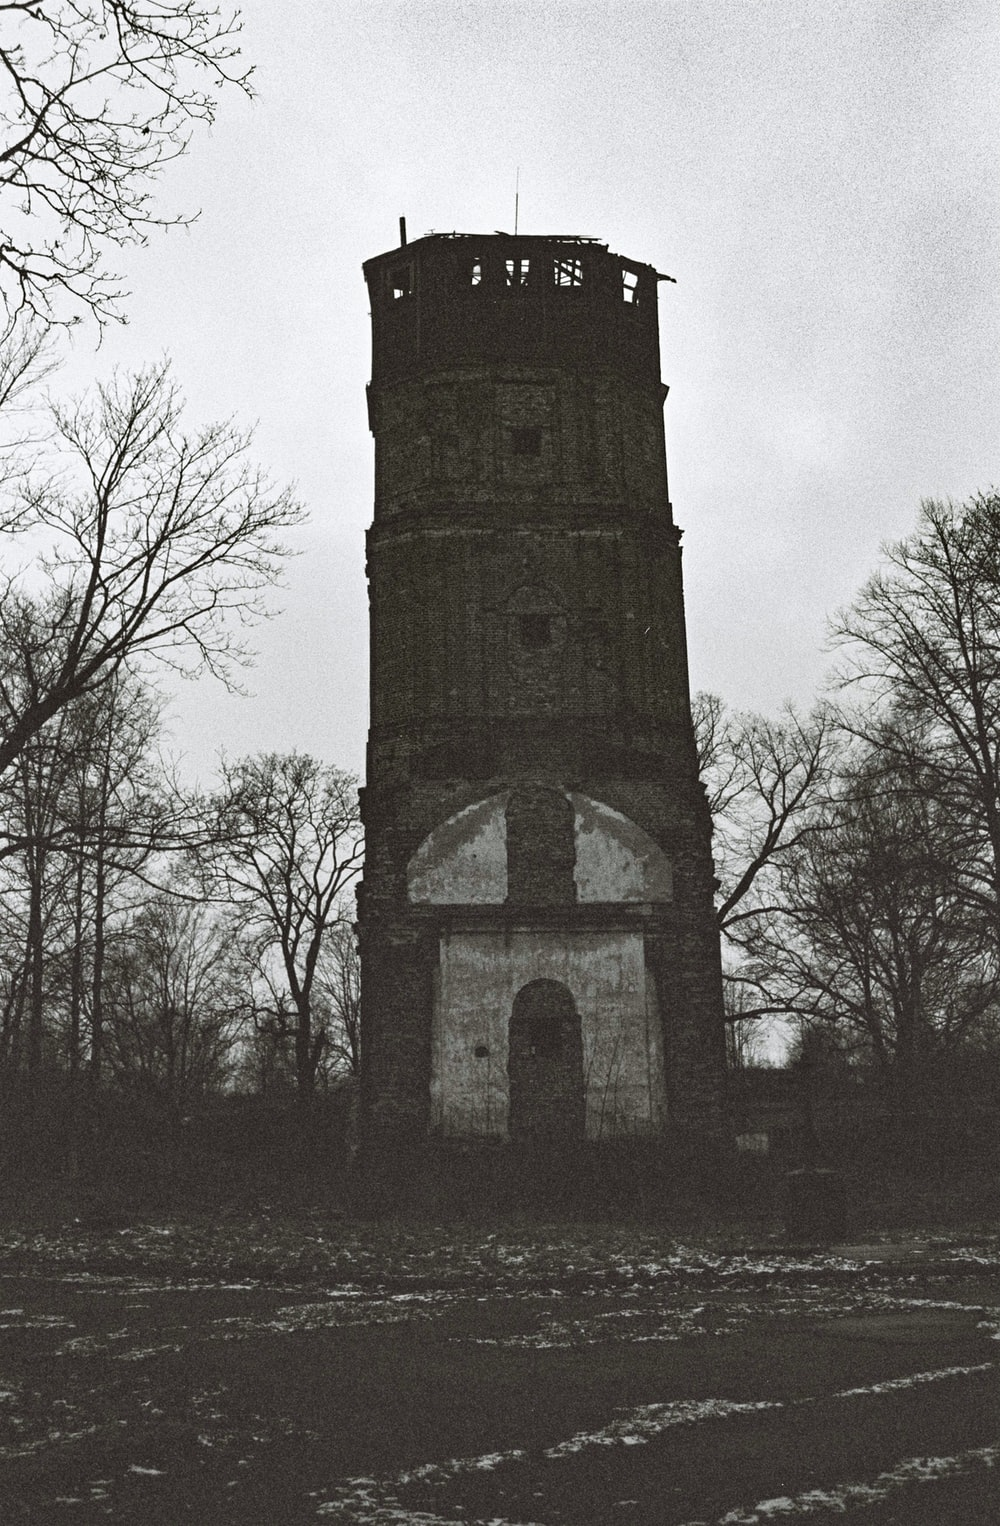 black and white tower under gray sky